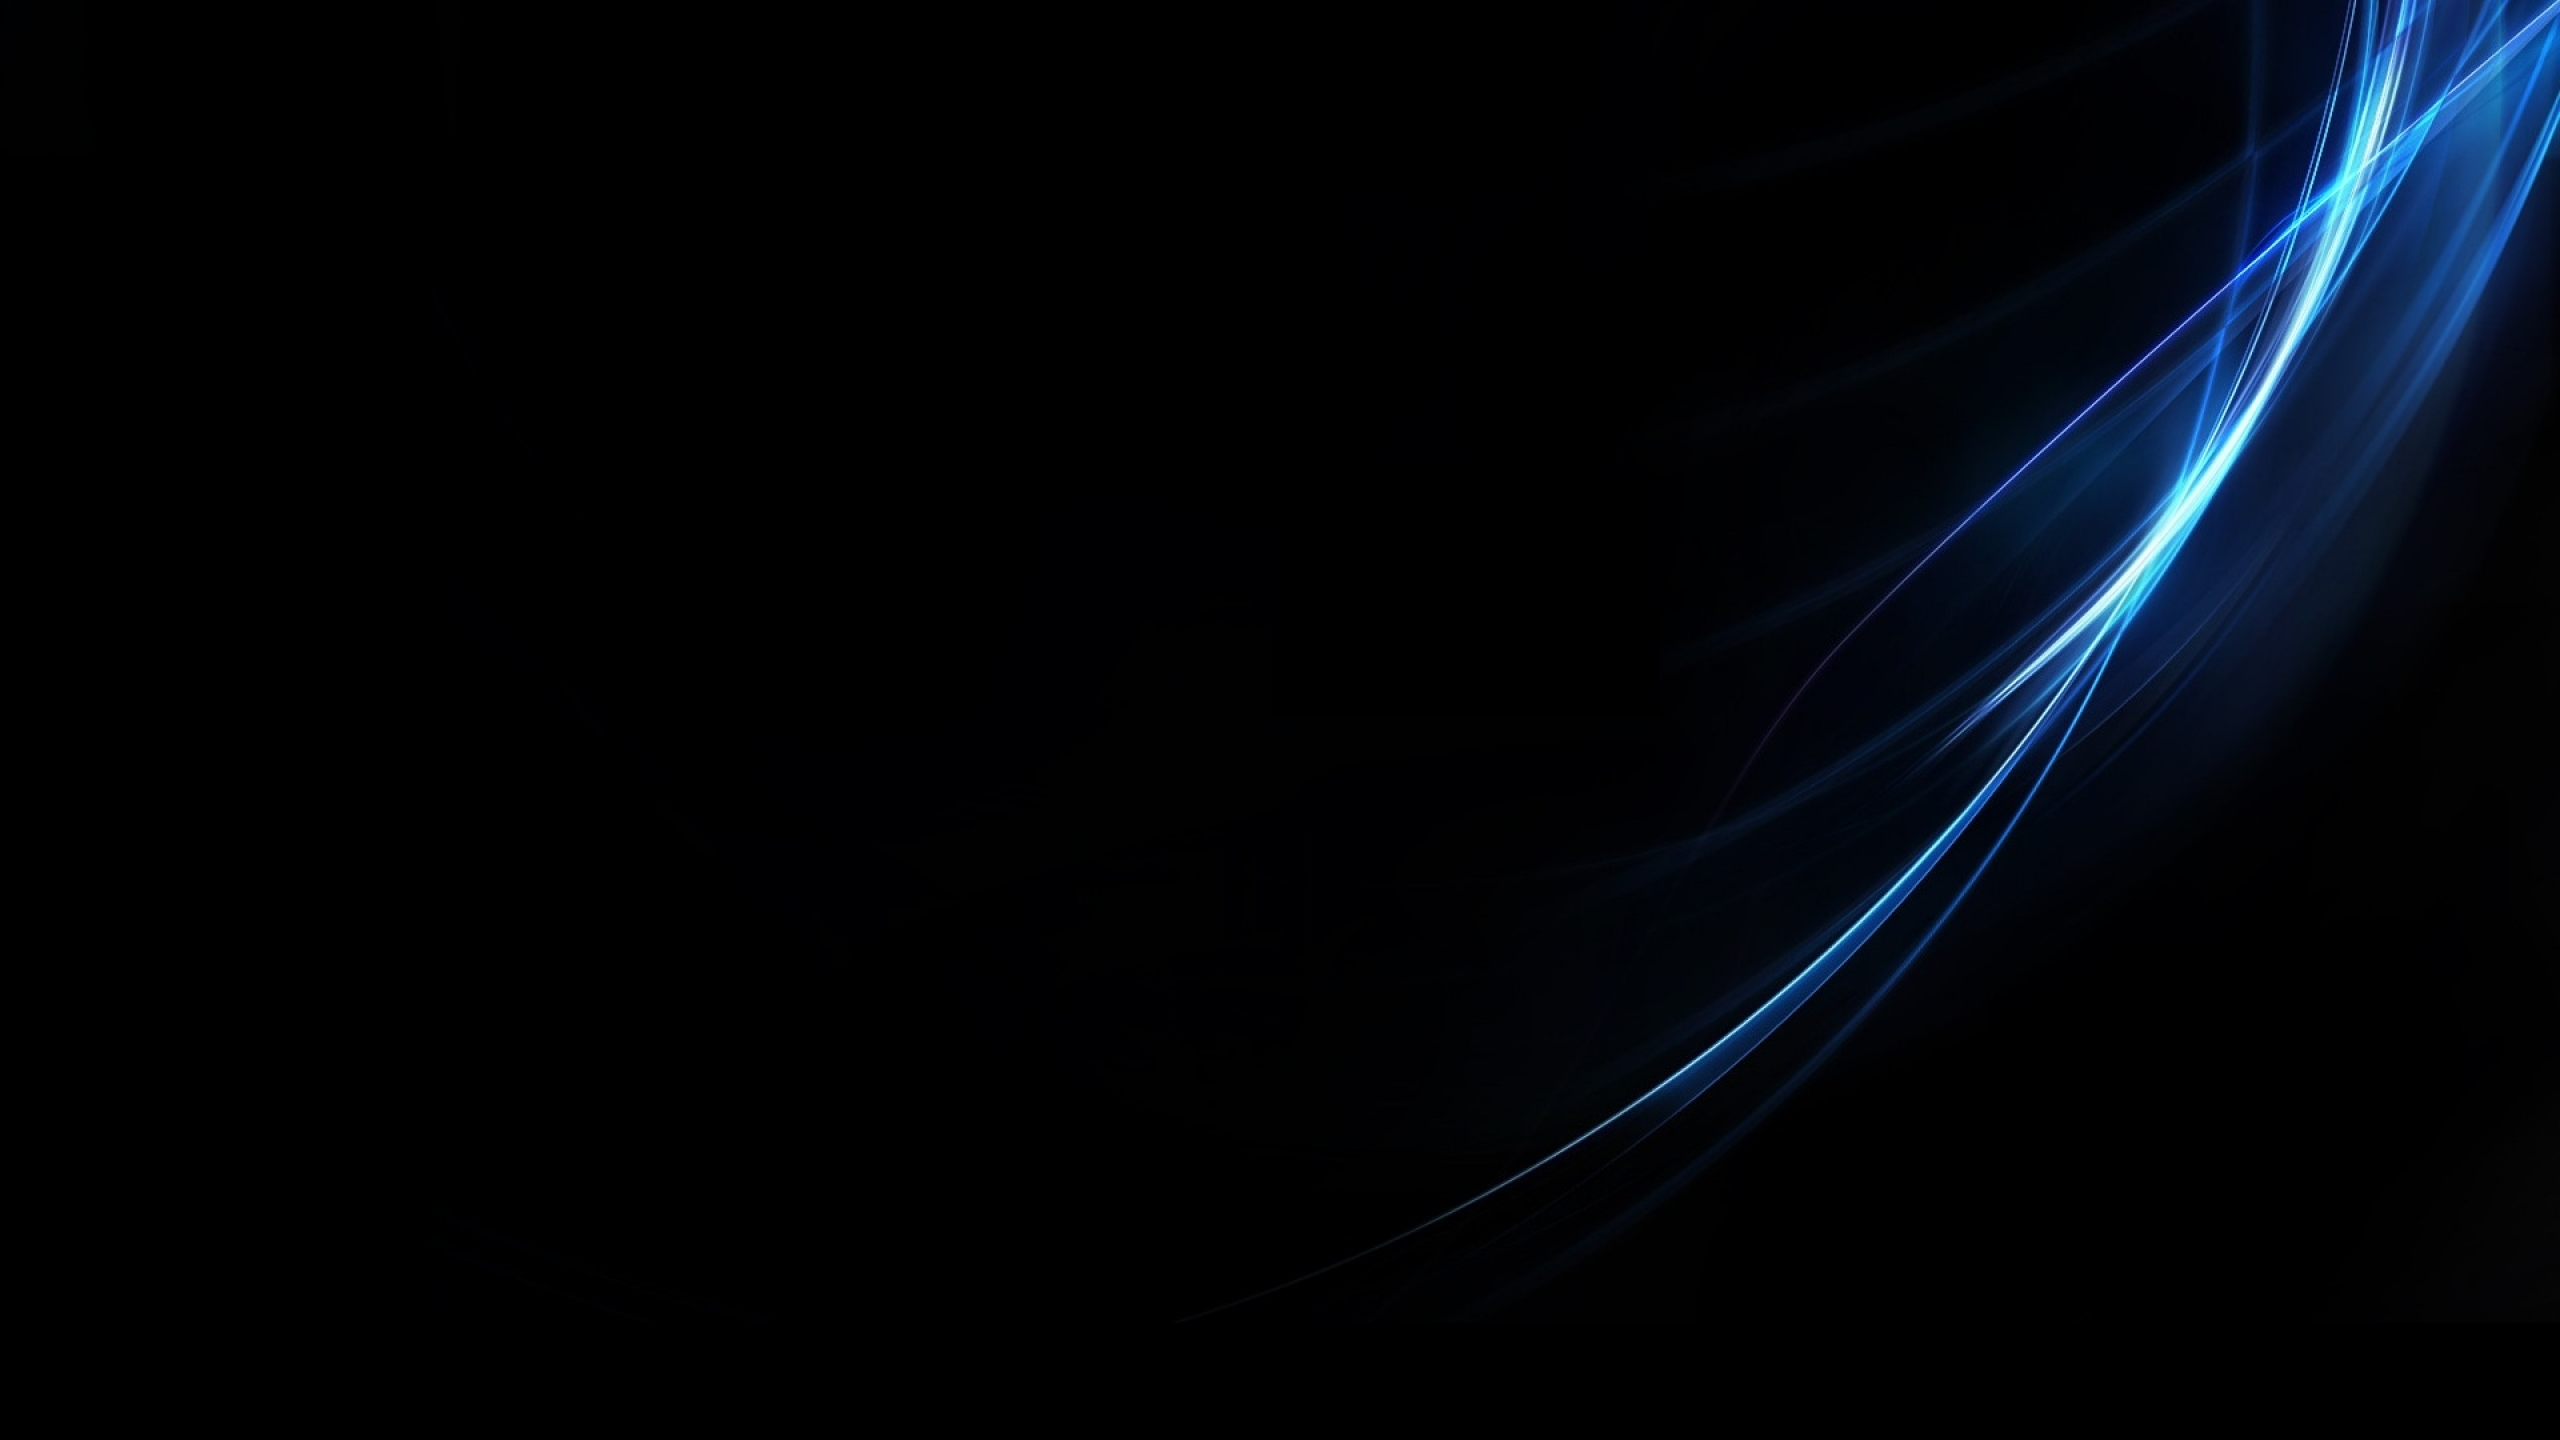 Windows Abstract Wallpapers Windows Abstract Backgrounds 2560x1440